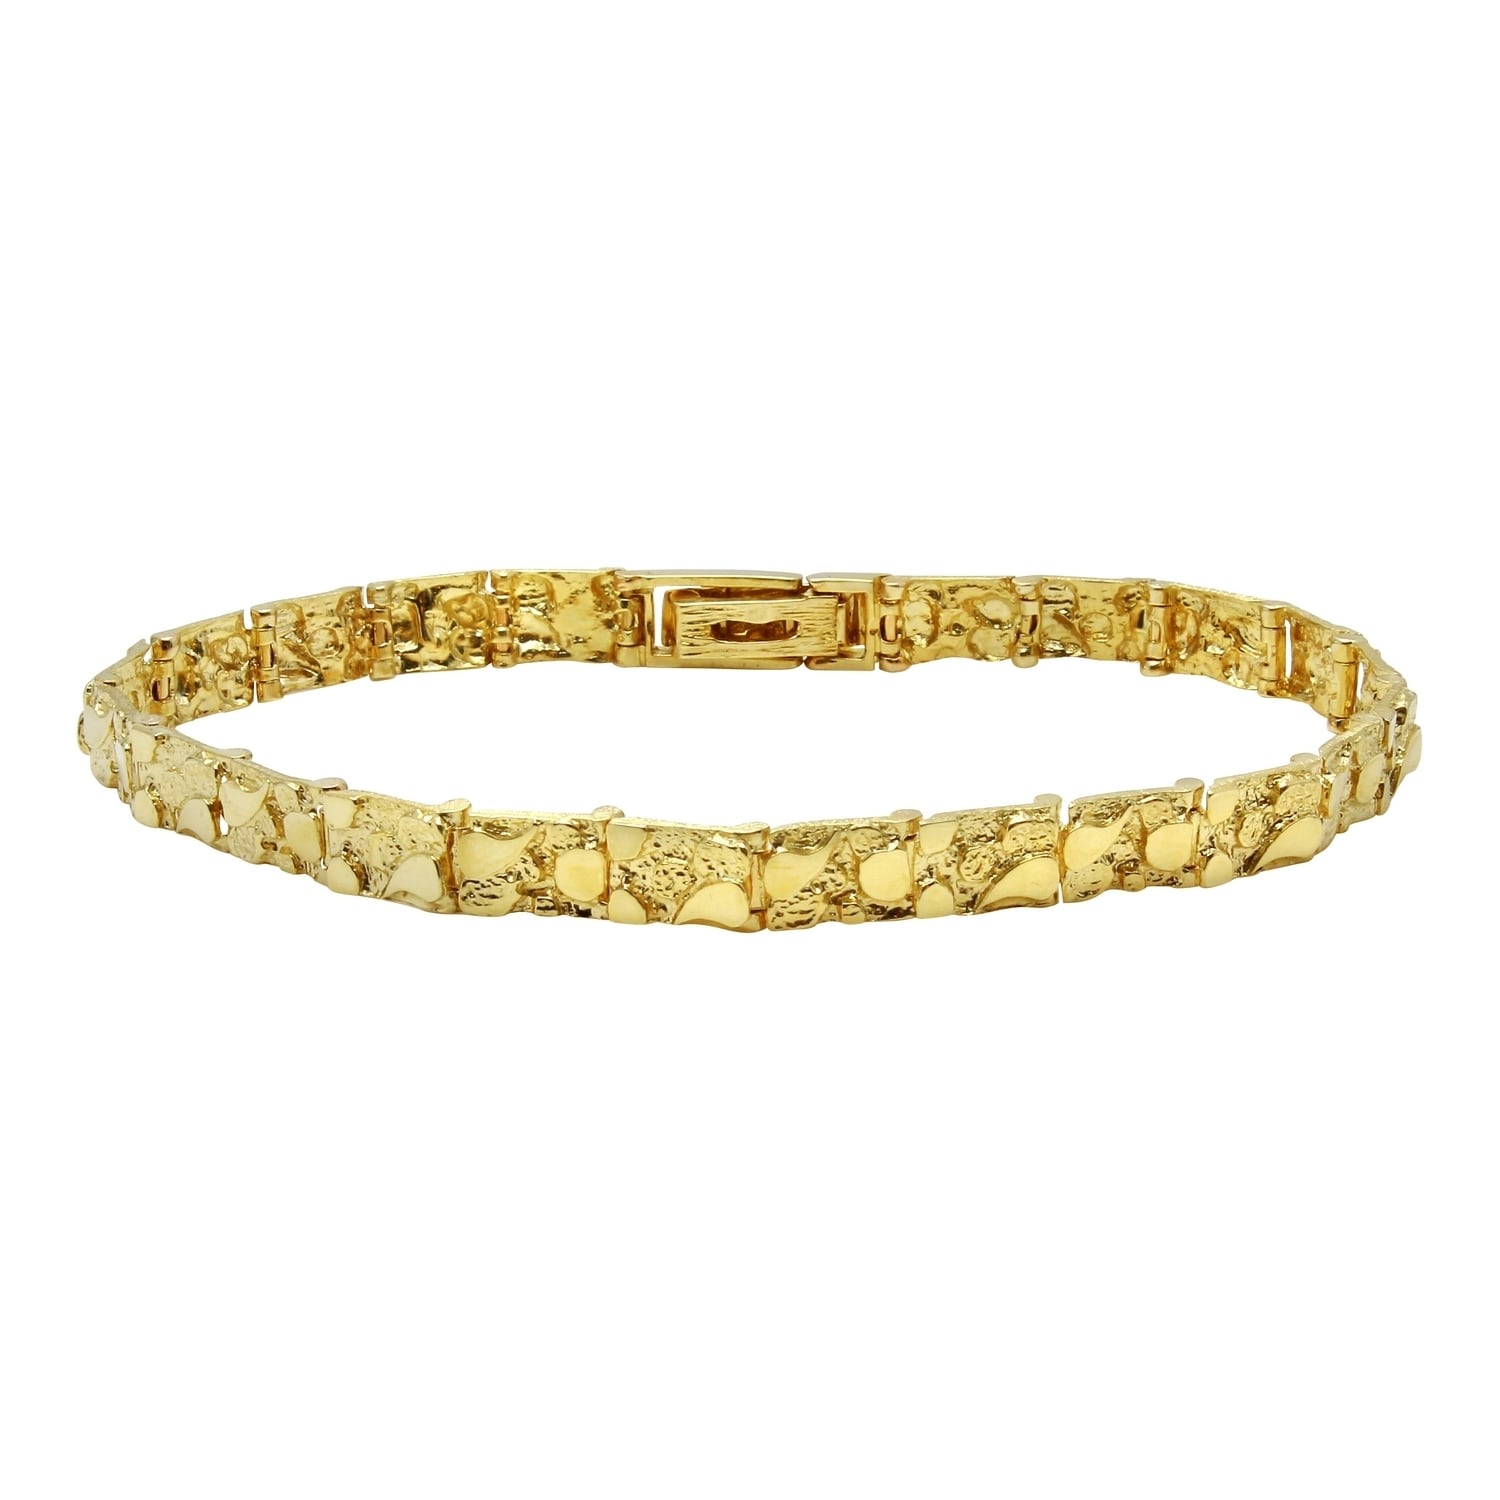 bracelet pin karat gold cartier bracelets color three bangles bangle trinity